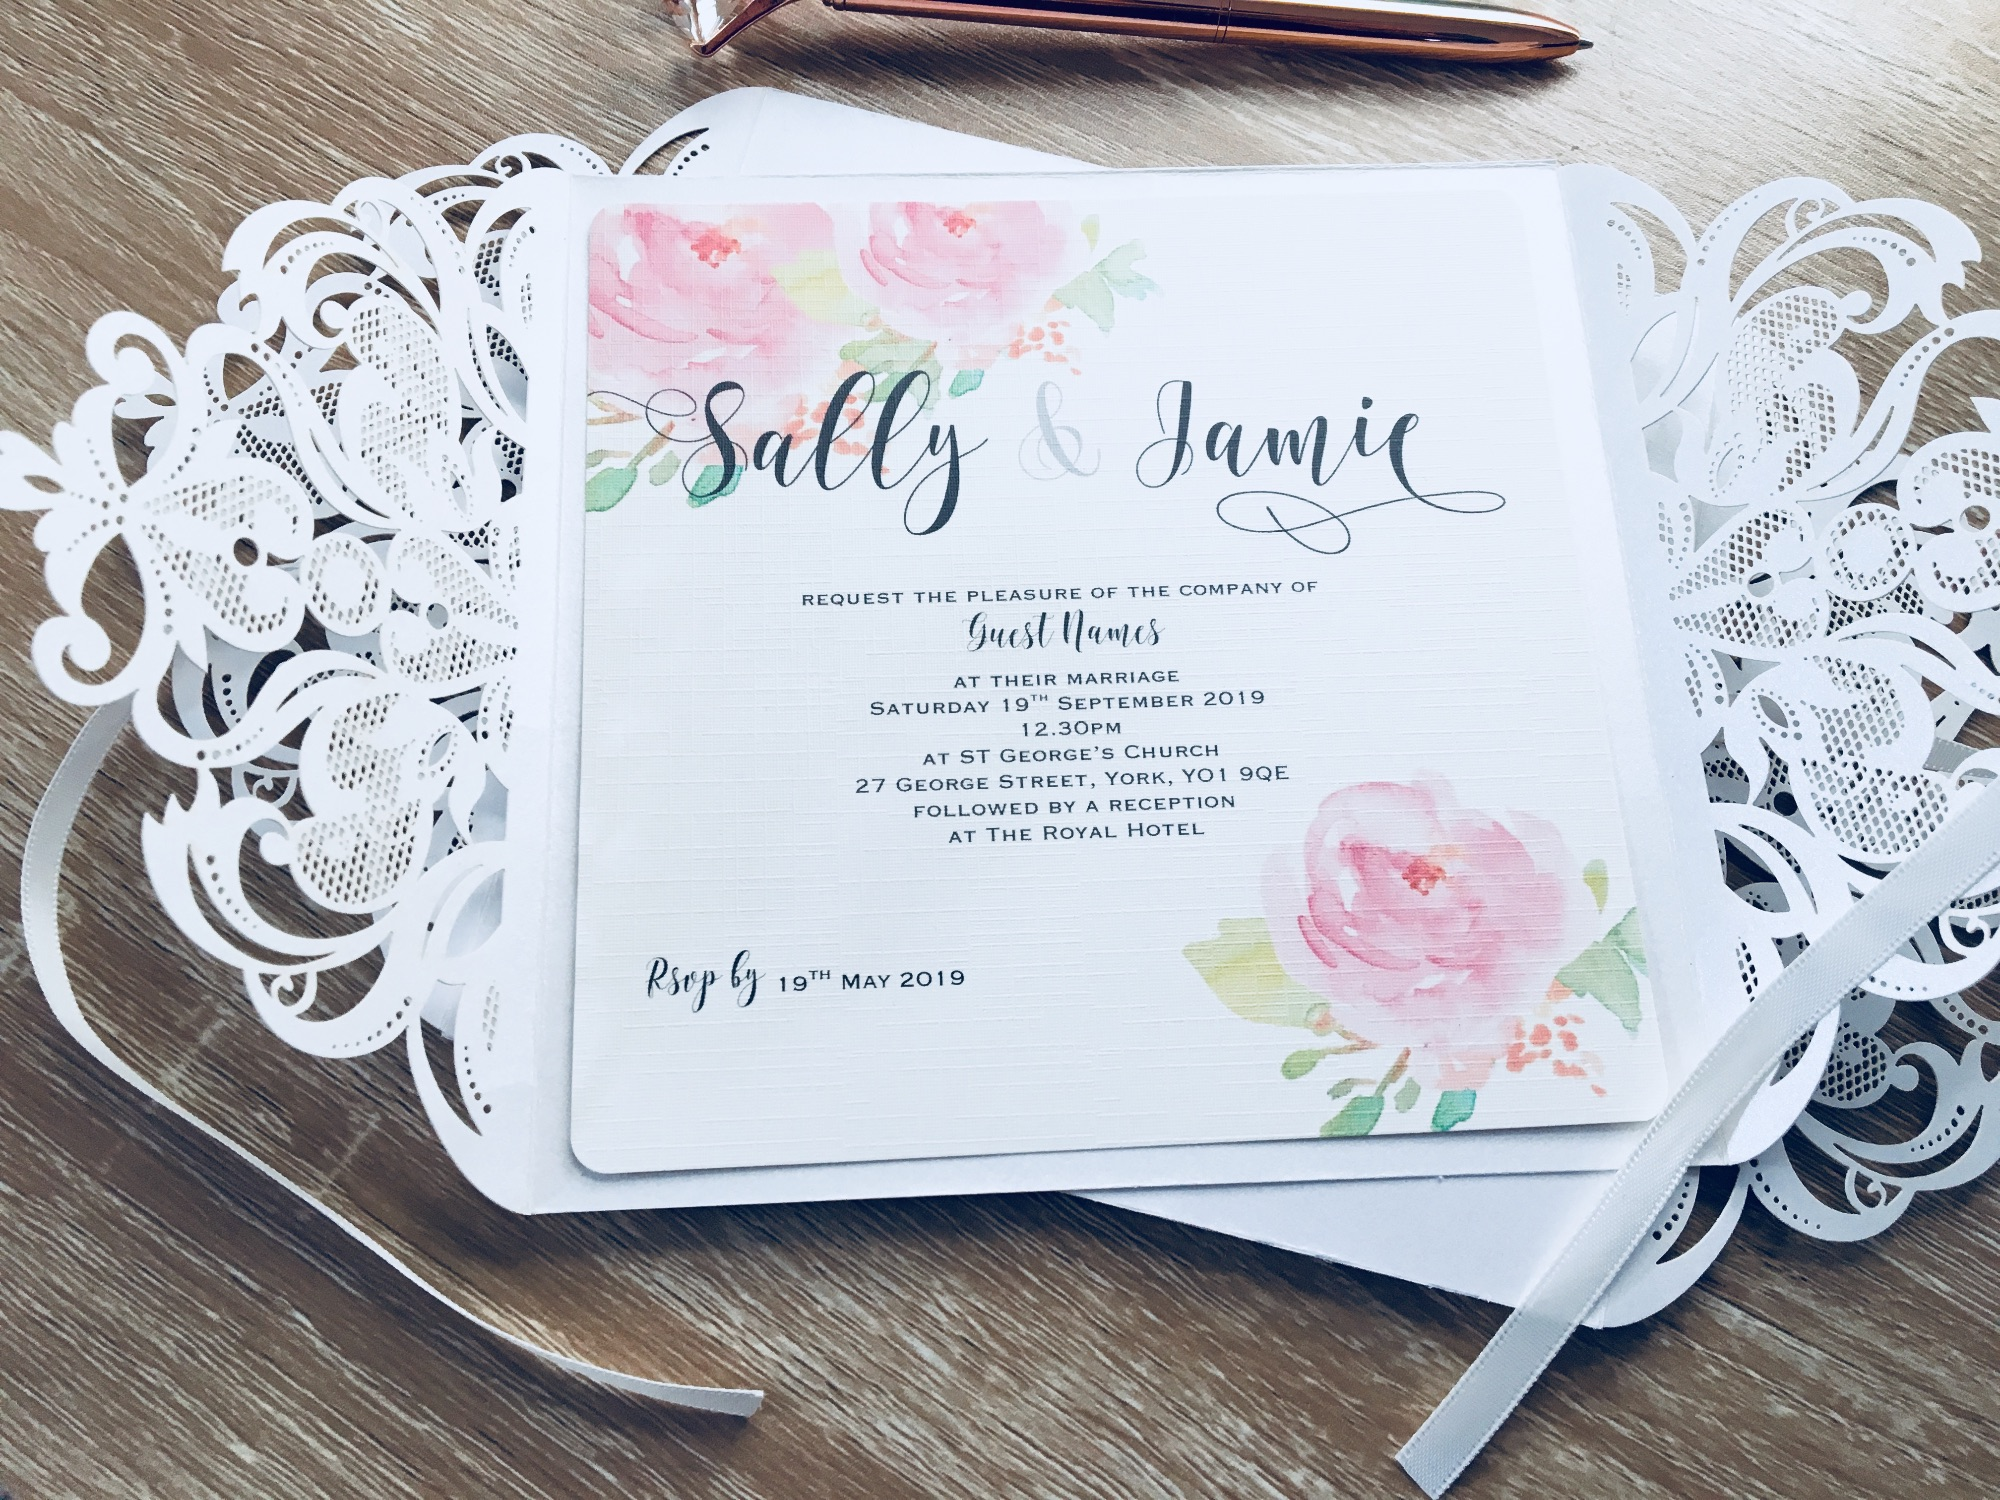 Laser cut invitations in box decorated with flowers and sparkles